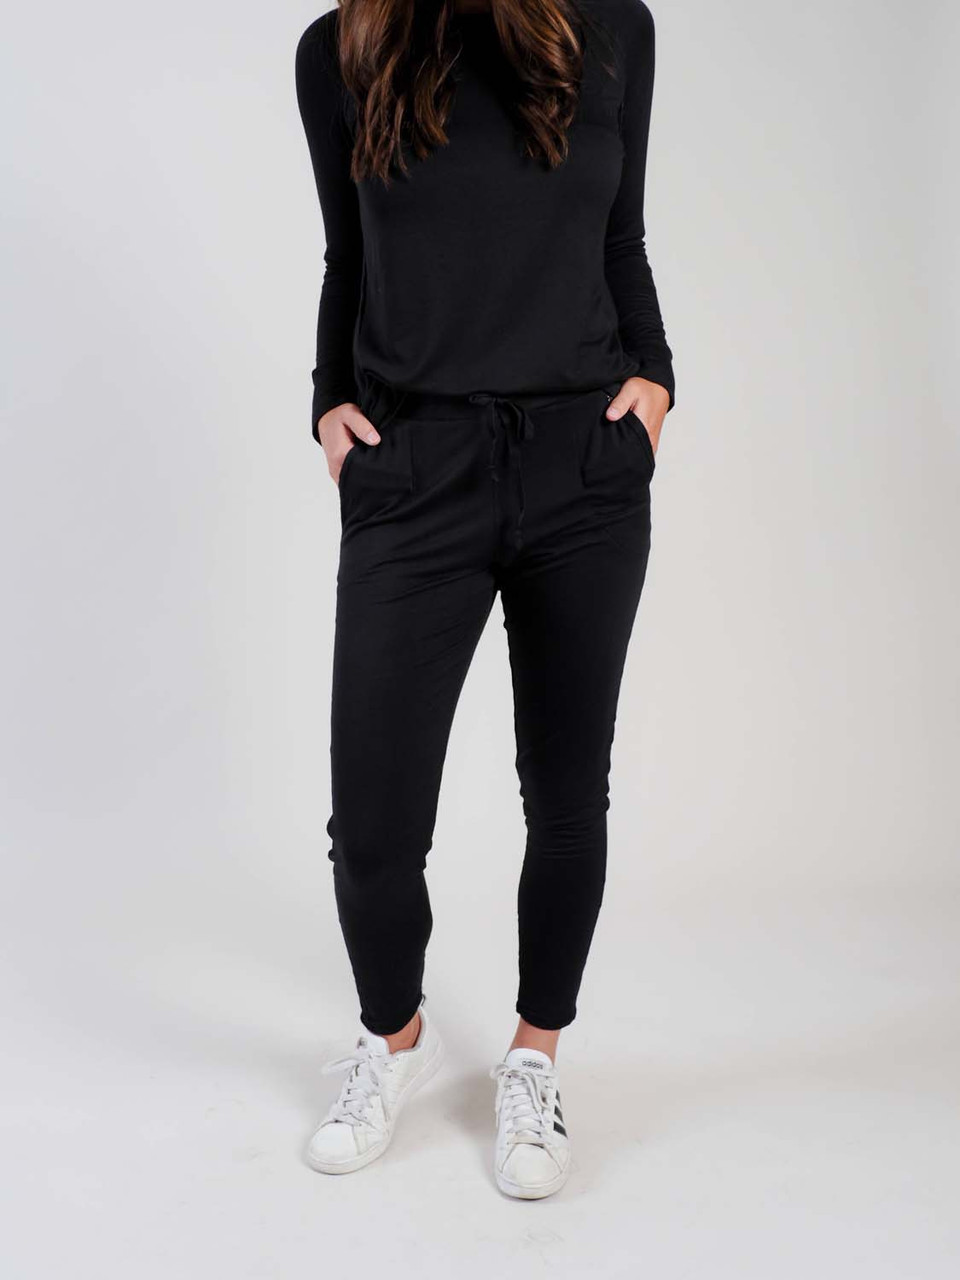 black lounge pant with drawstring waist